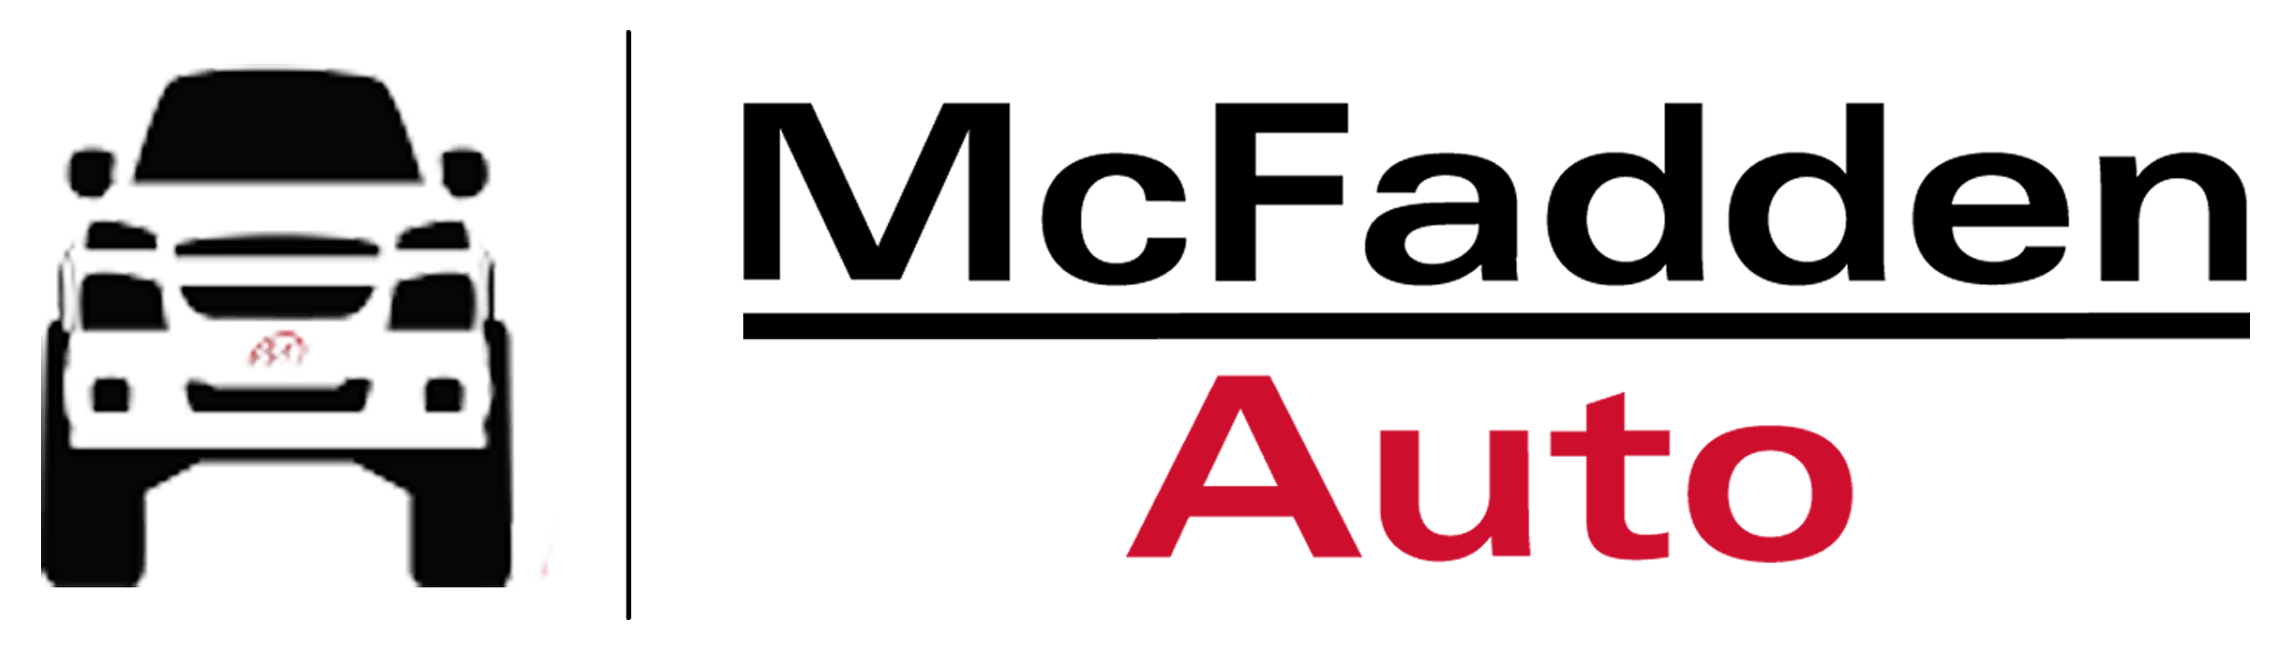 McFadden Auto Used Car Lot